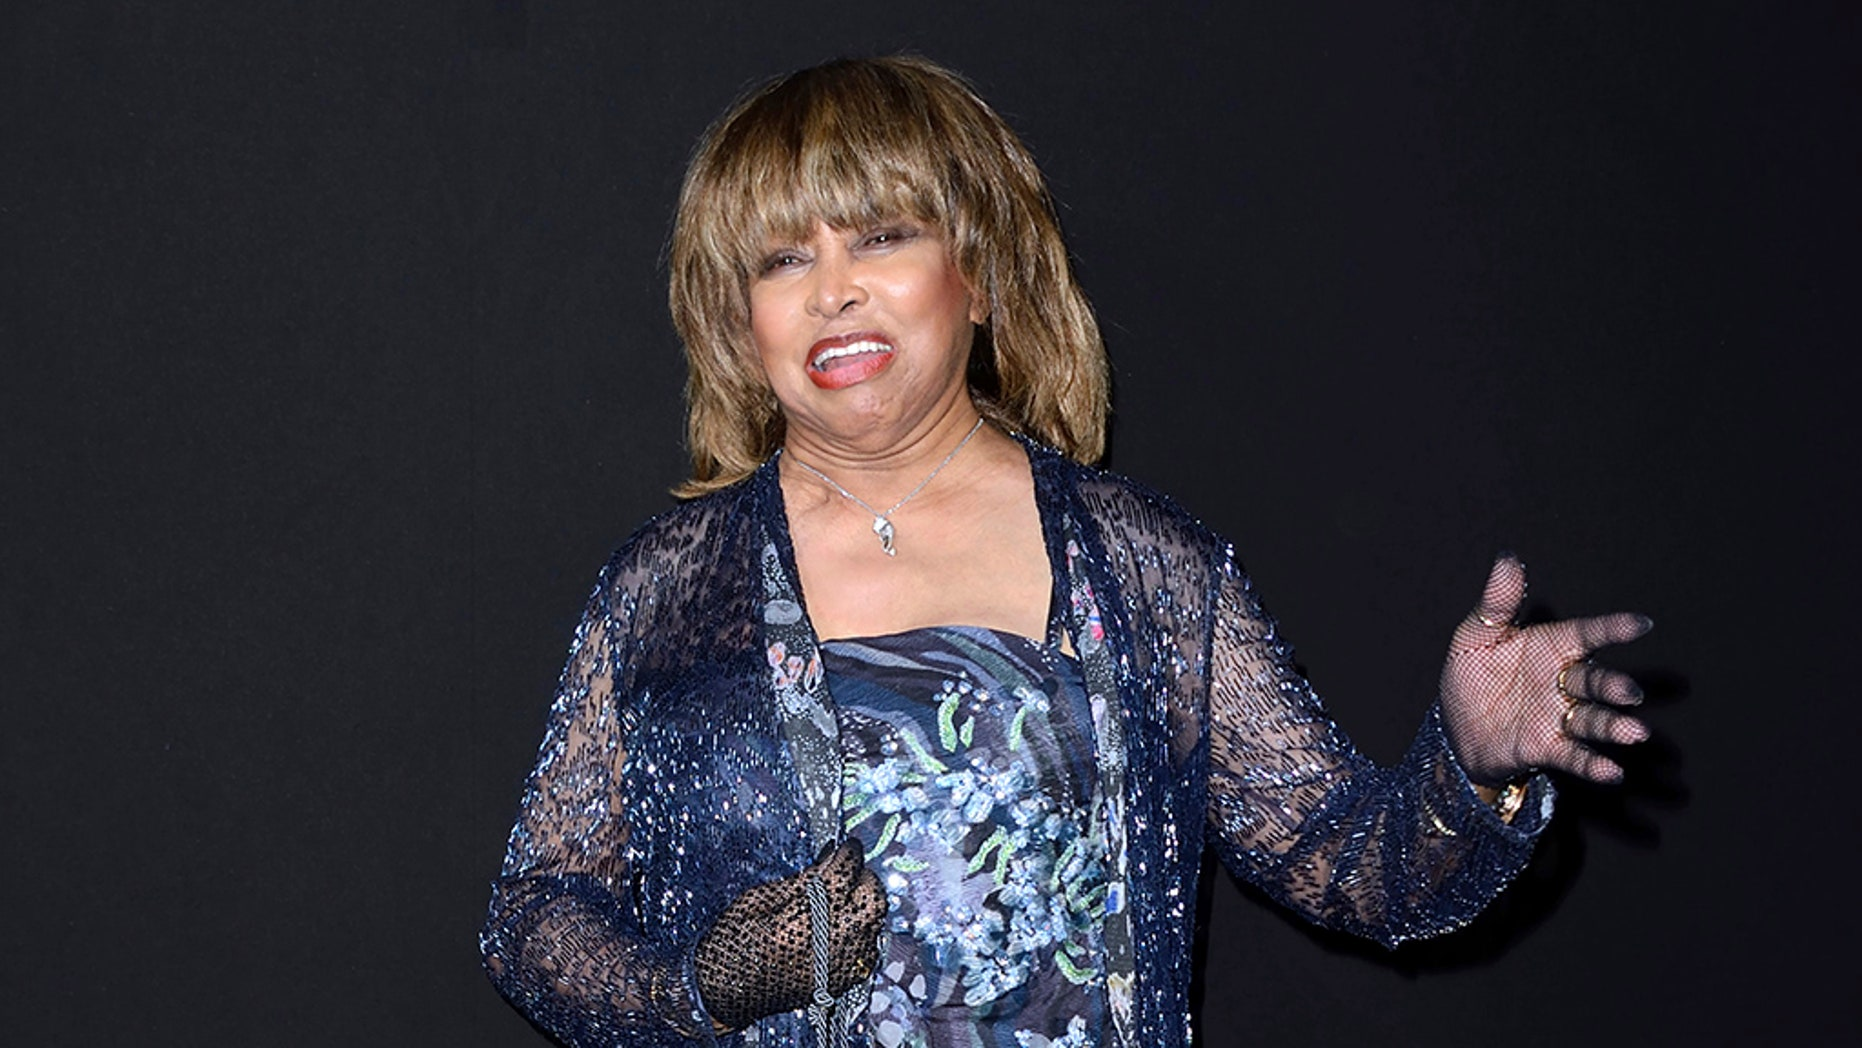 Tina Turner is coping with the loss of her son.